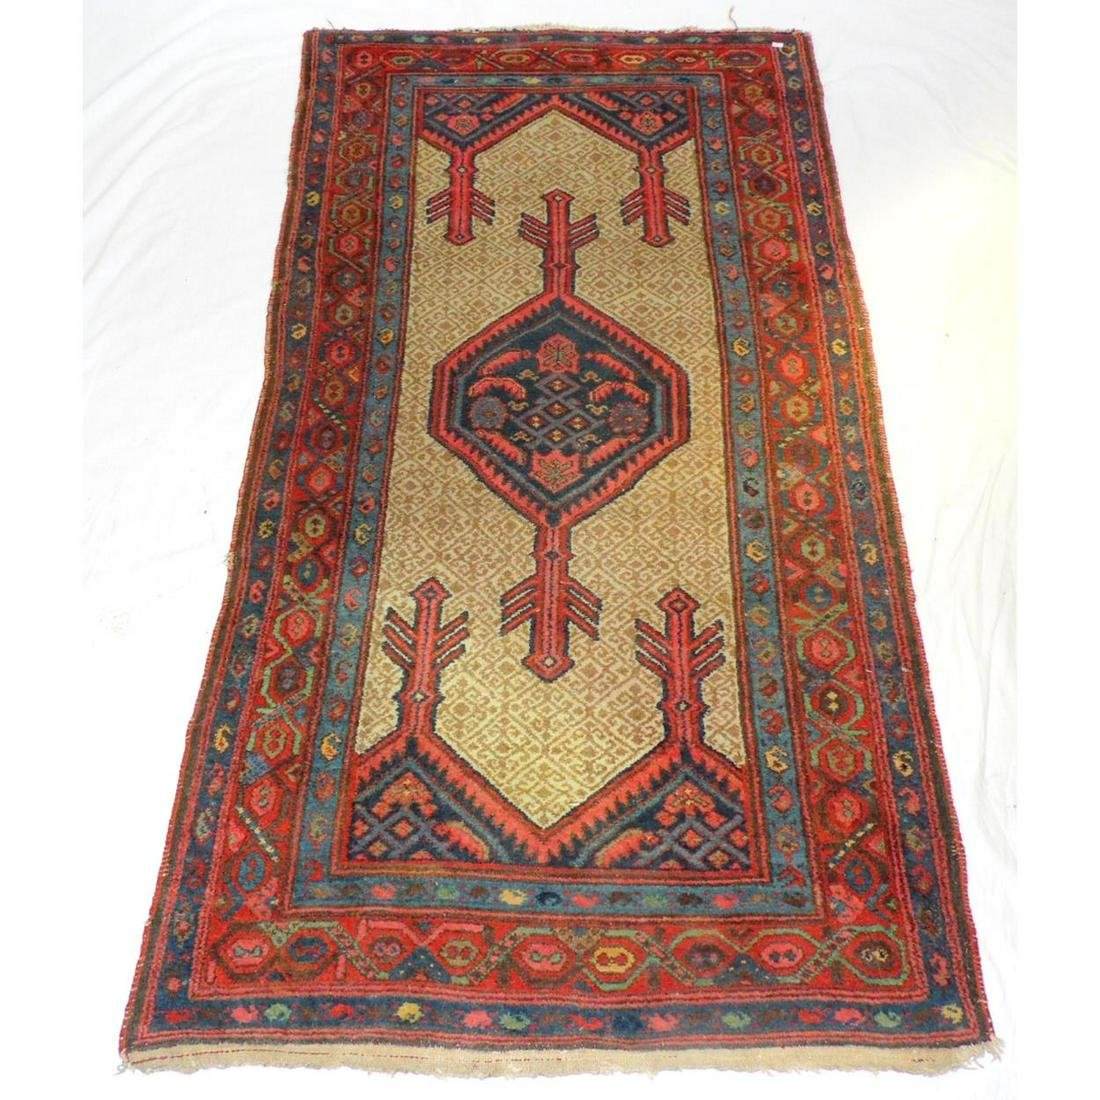 Antique Persian Hand Woven Carpet